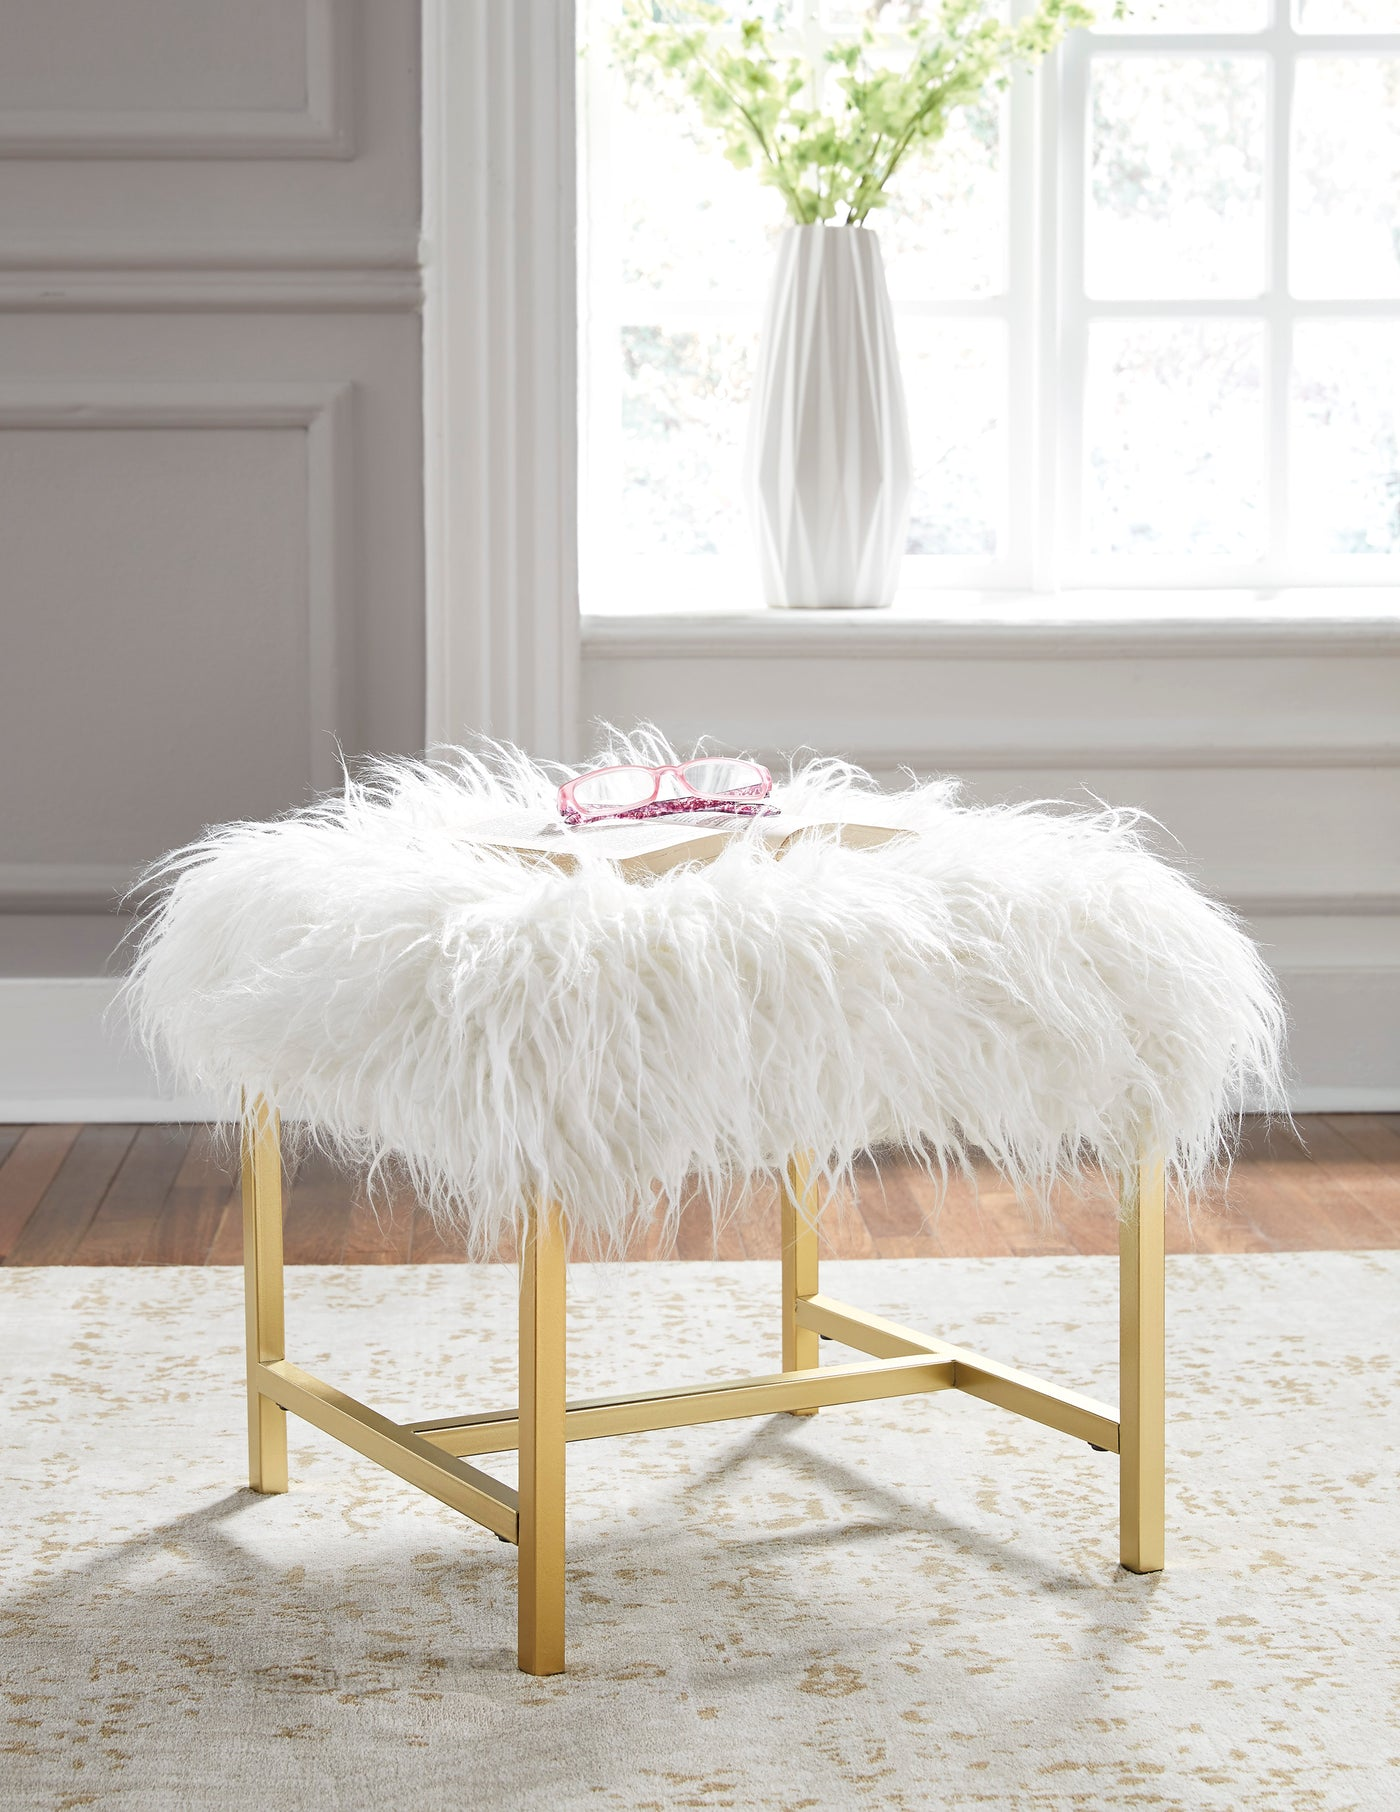 Astonishing Elise White Faux Fur Stool With Gold Legs Bralicious Painted Fabric Chair Ideas Braliciousco